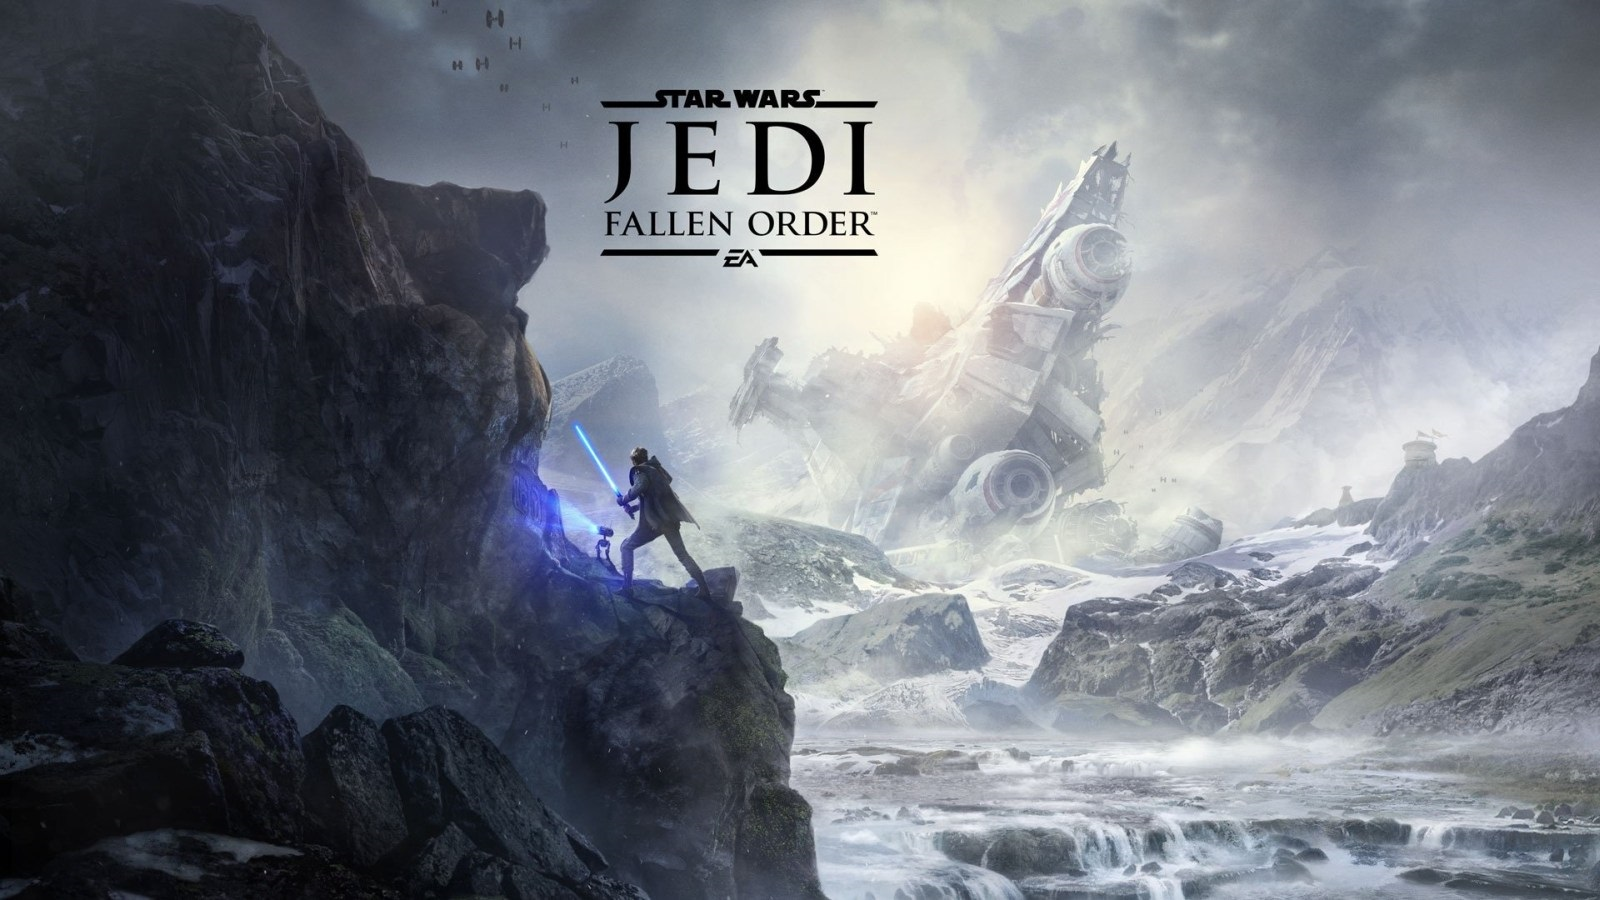 Star Wars Jedi: Fallen Order; wallpaper: cover